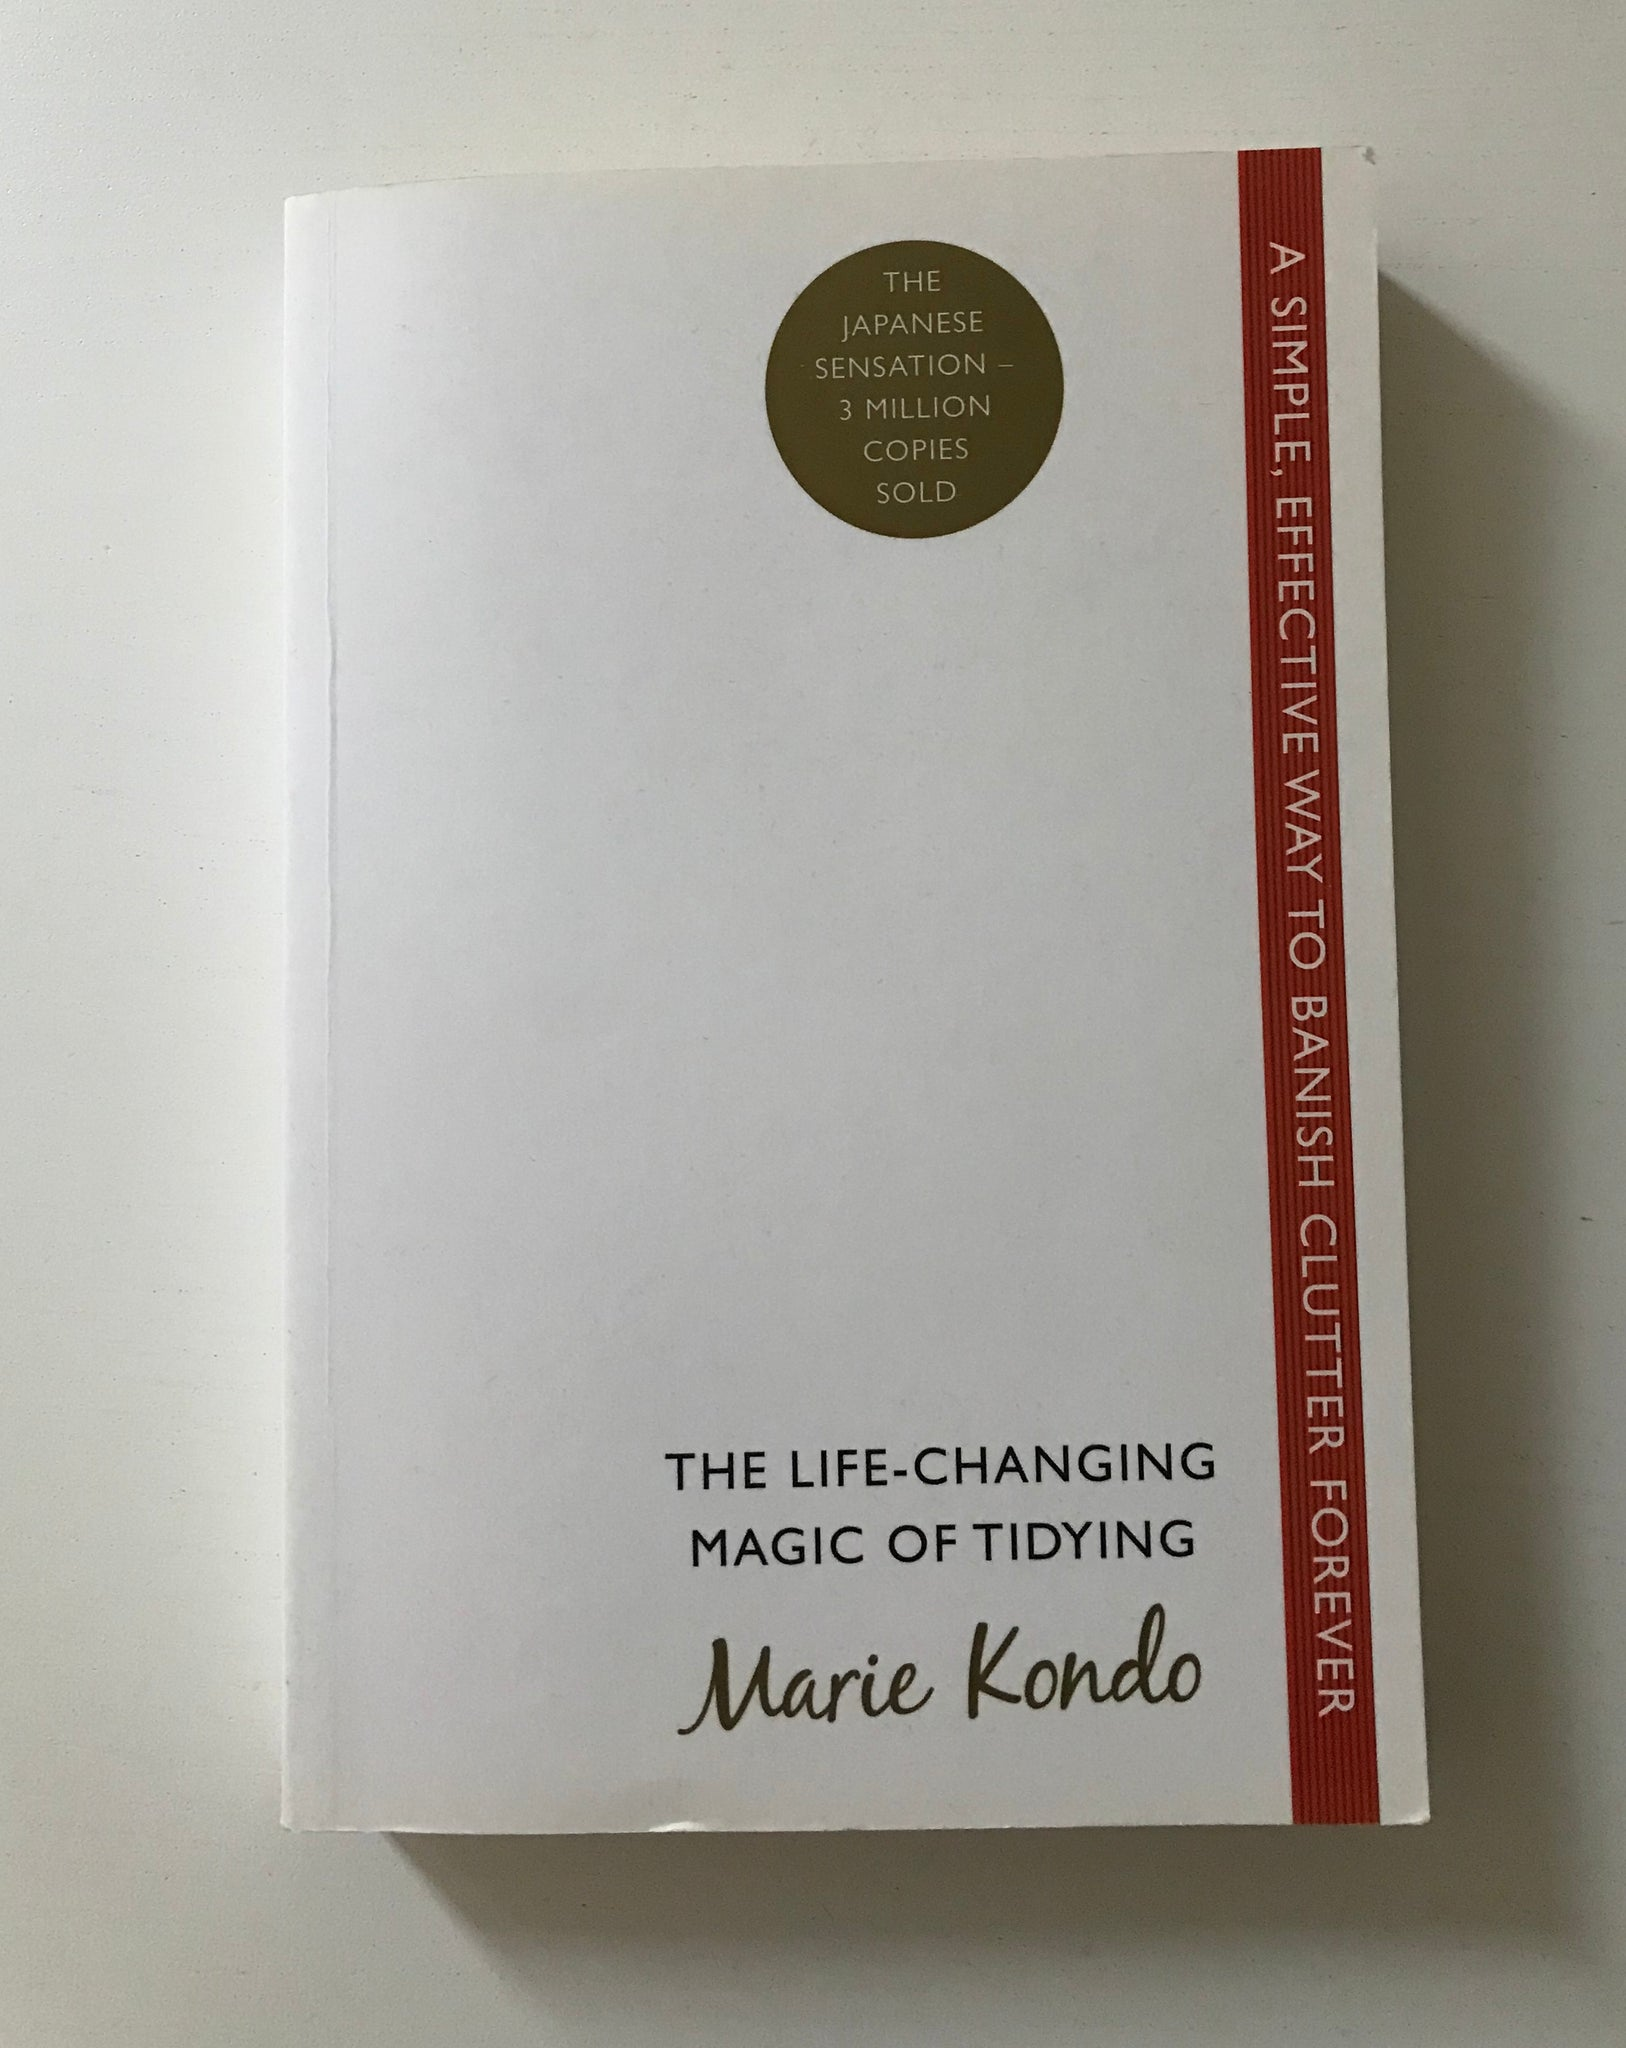 Marie Kondo - The life-changing magic of Tidying